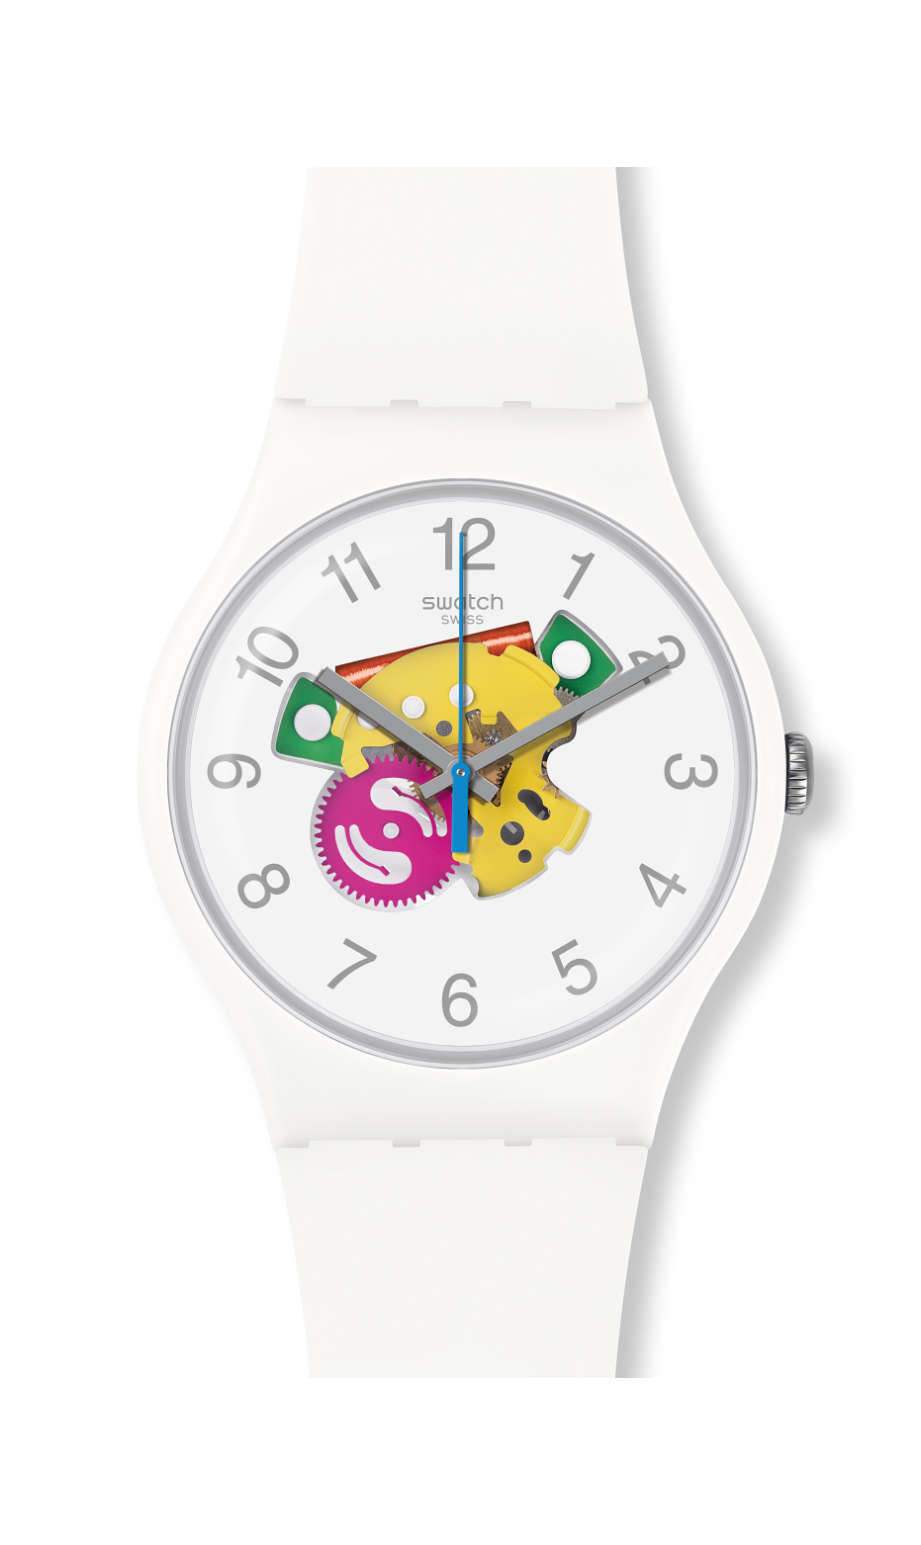 Swatch - CANDINETTE - 1